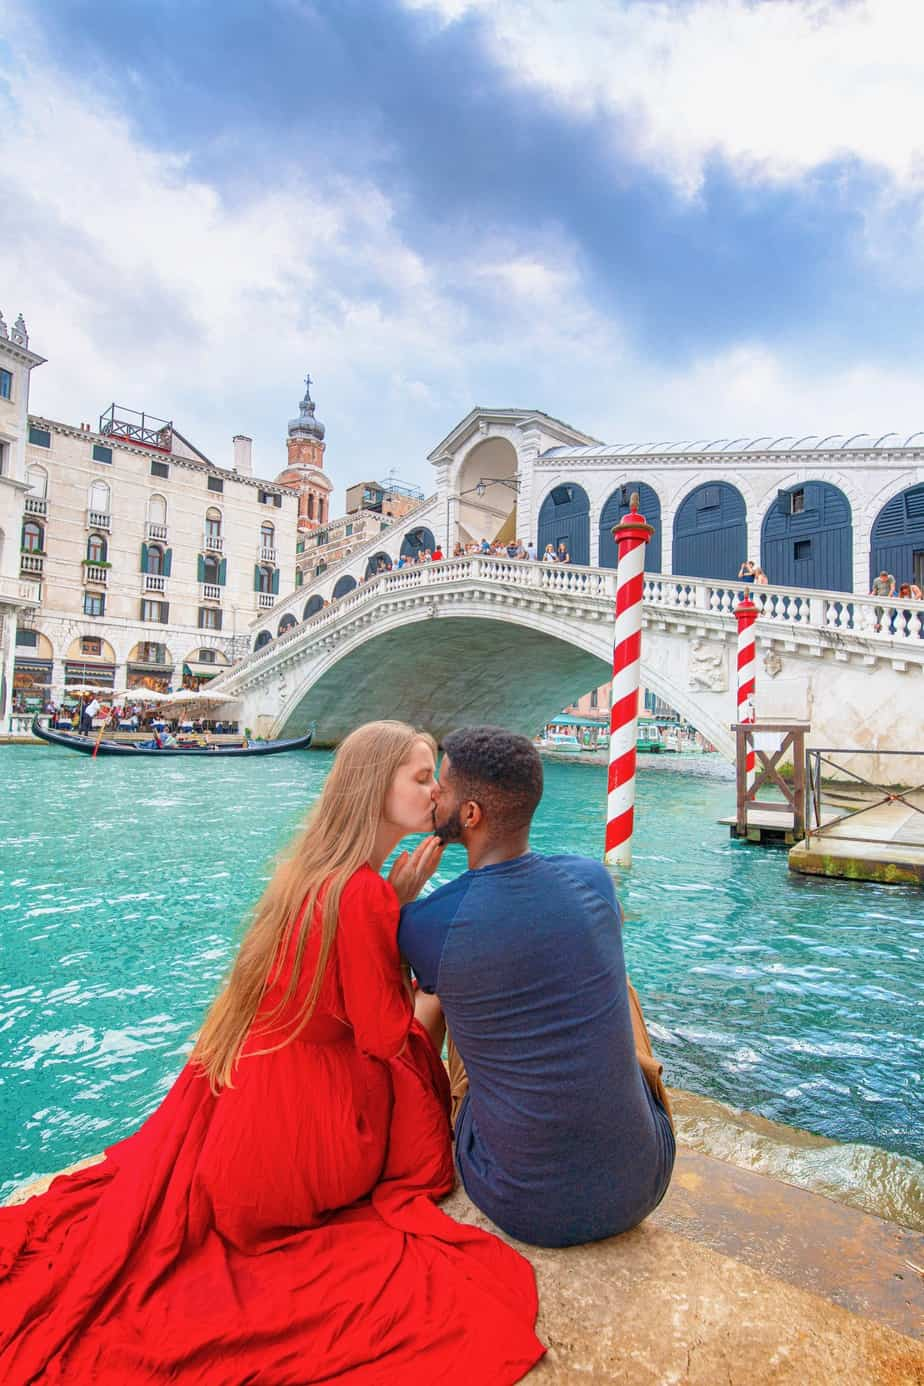 Cute couple at Rialto Bridge in Venice Italy | Rialto Bridge is one of the Instagrammable places in Venice | cute couple photos in Venice | top Venice Instagram locations | prettiest Instagram spots in Venice for couples | engagement photos in Venice Italy | Italy travel tips